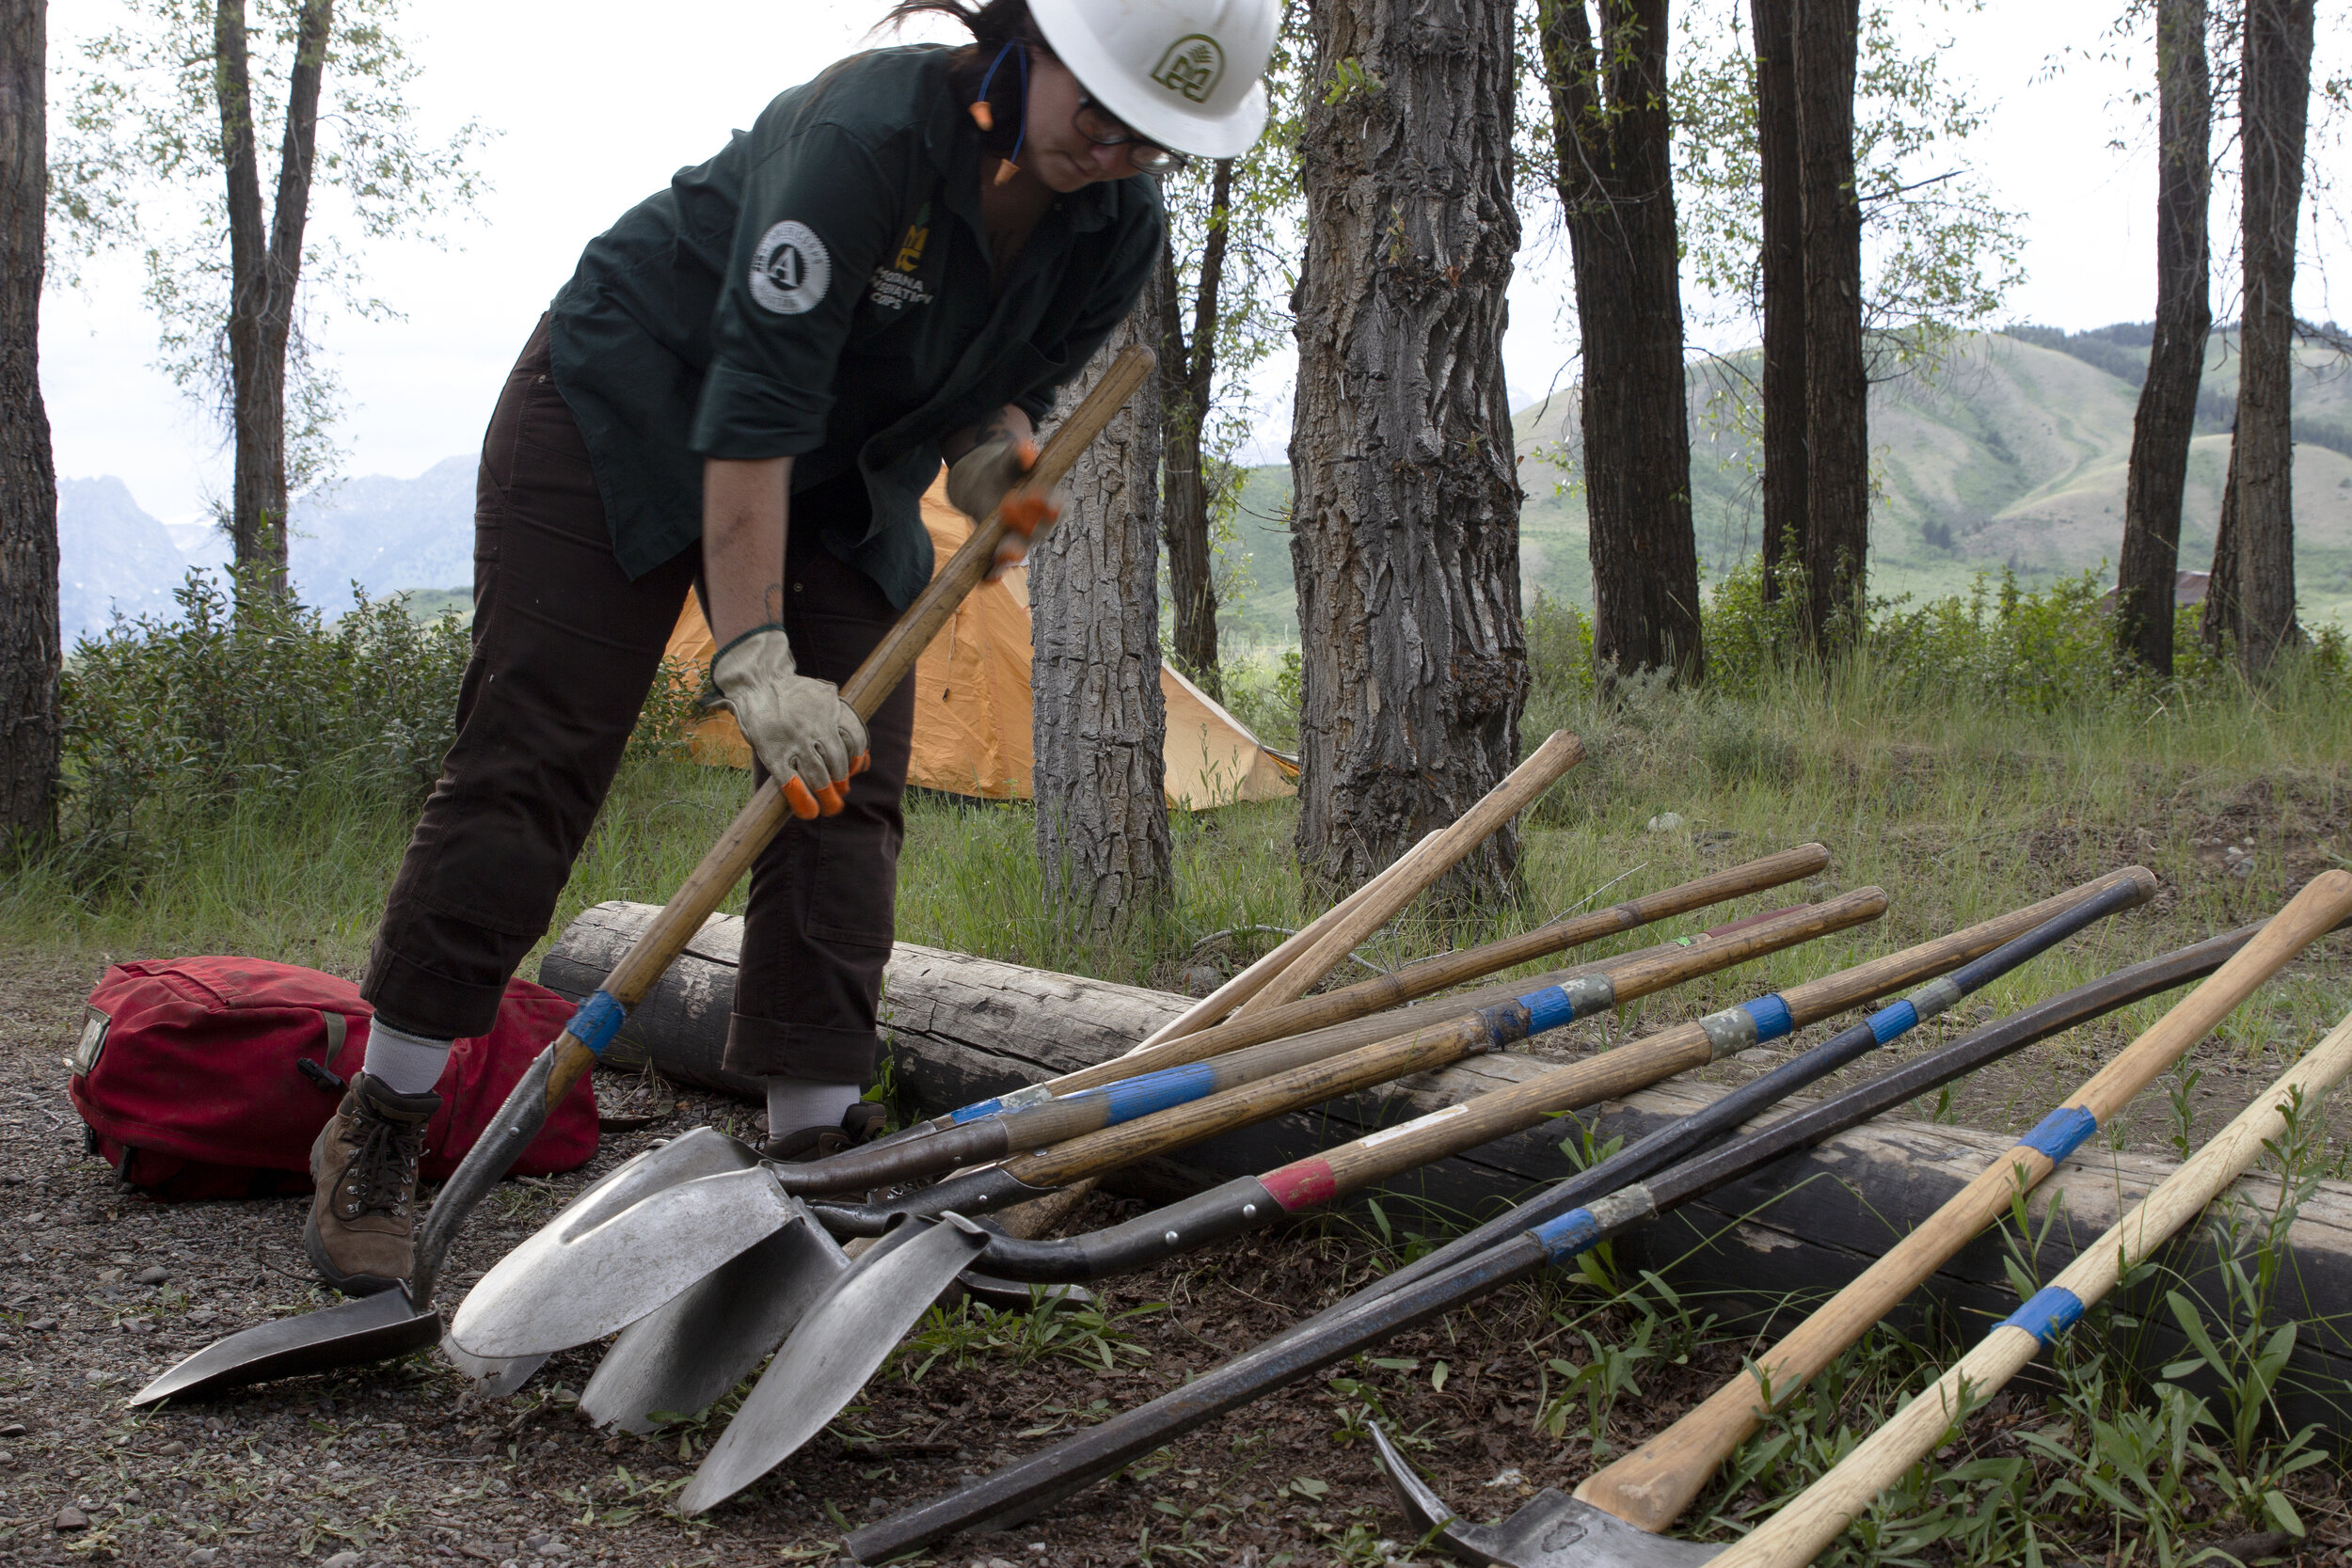 Youth Corp attendees work hard each day in the GTNP